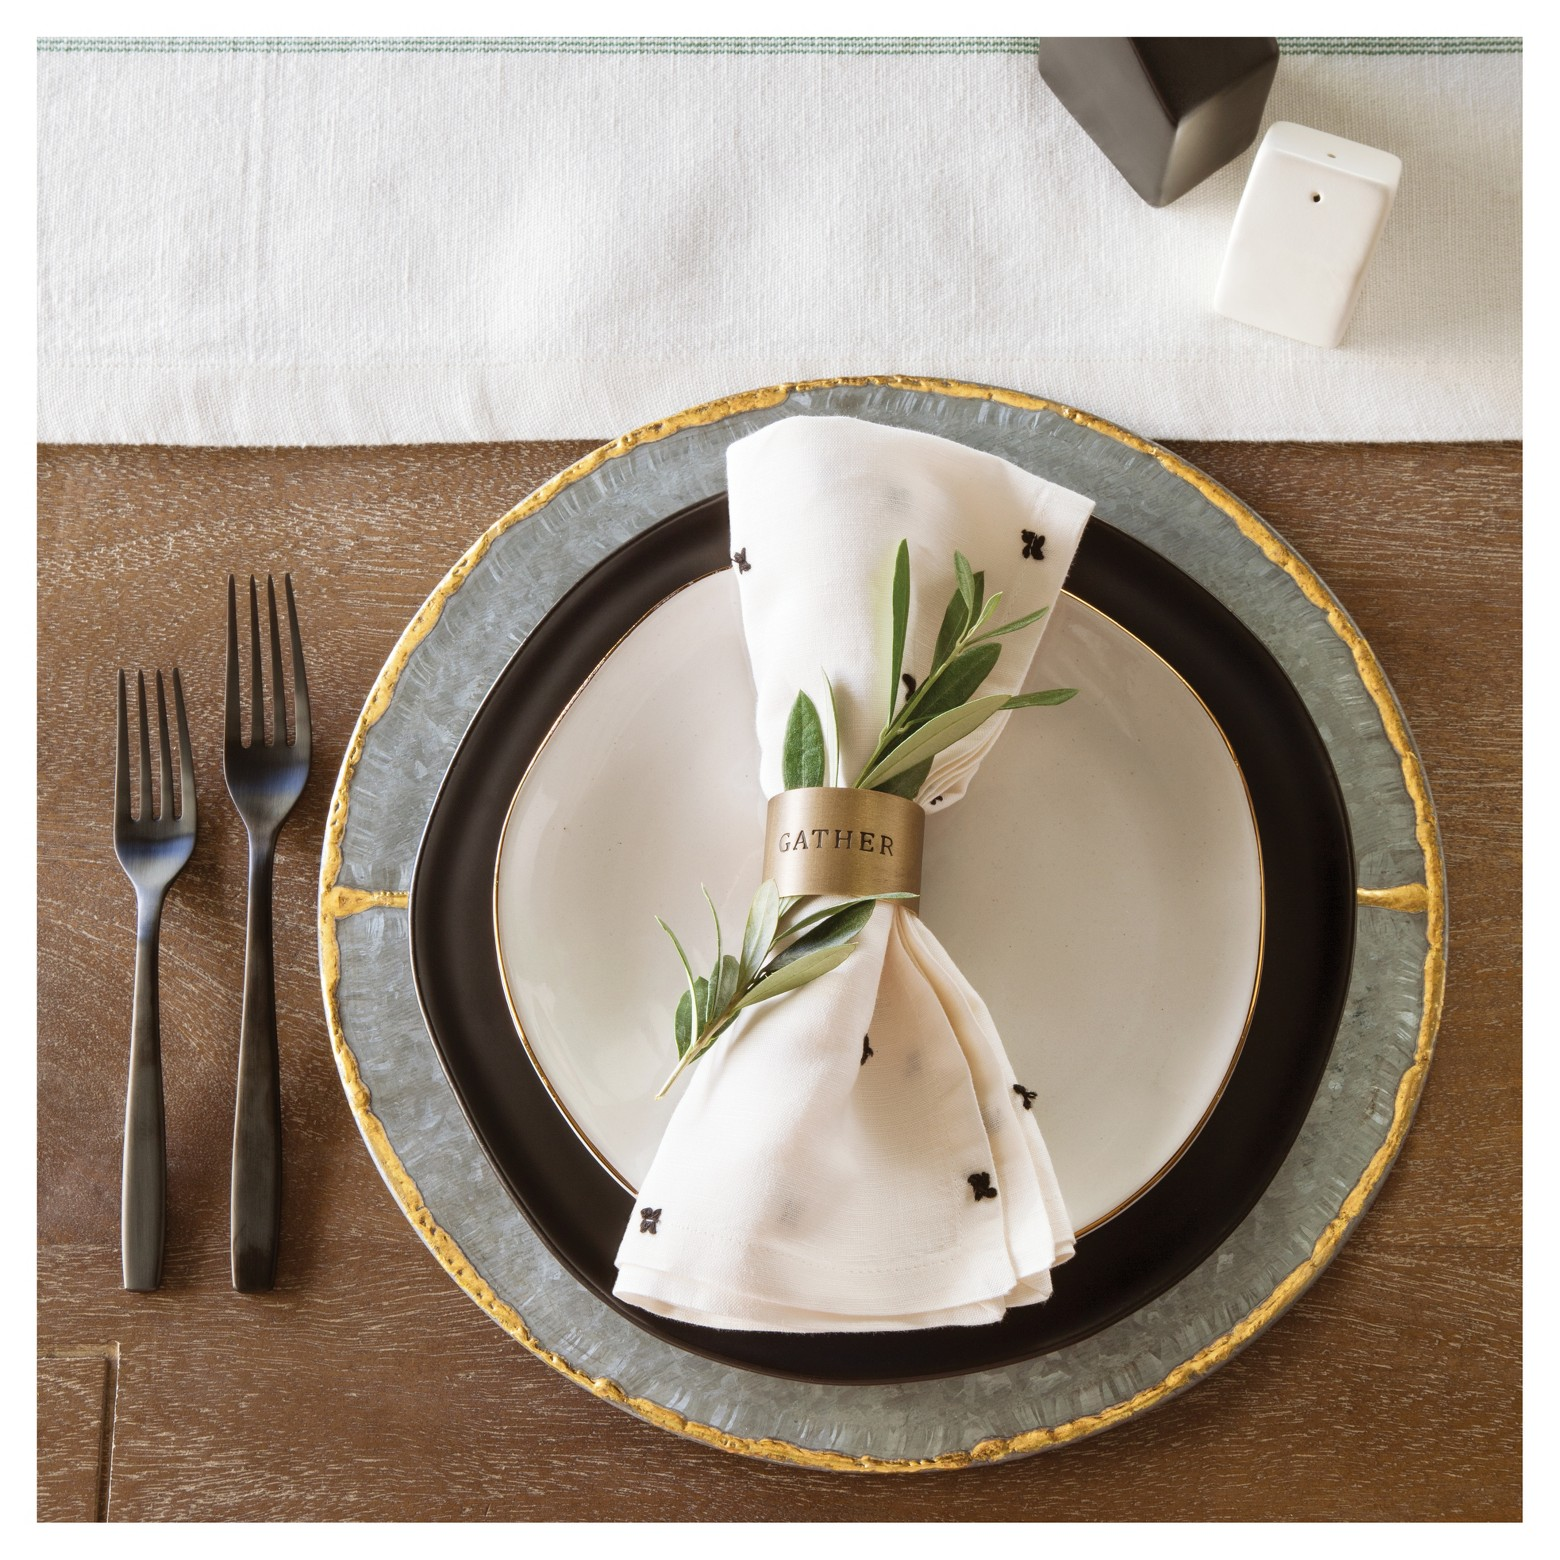 Napkin ring  - These dainty napkin rings are here just in time for thanksgiving. I love the little something special that these gold rings add to the table setting.